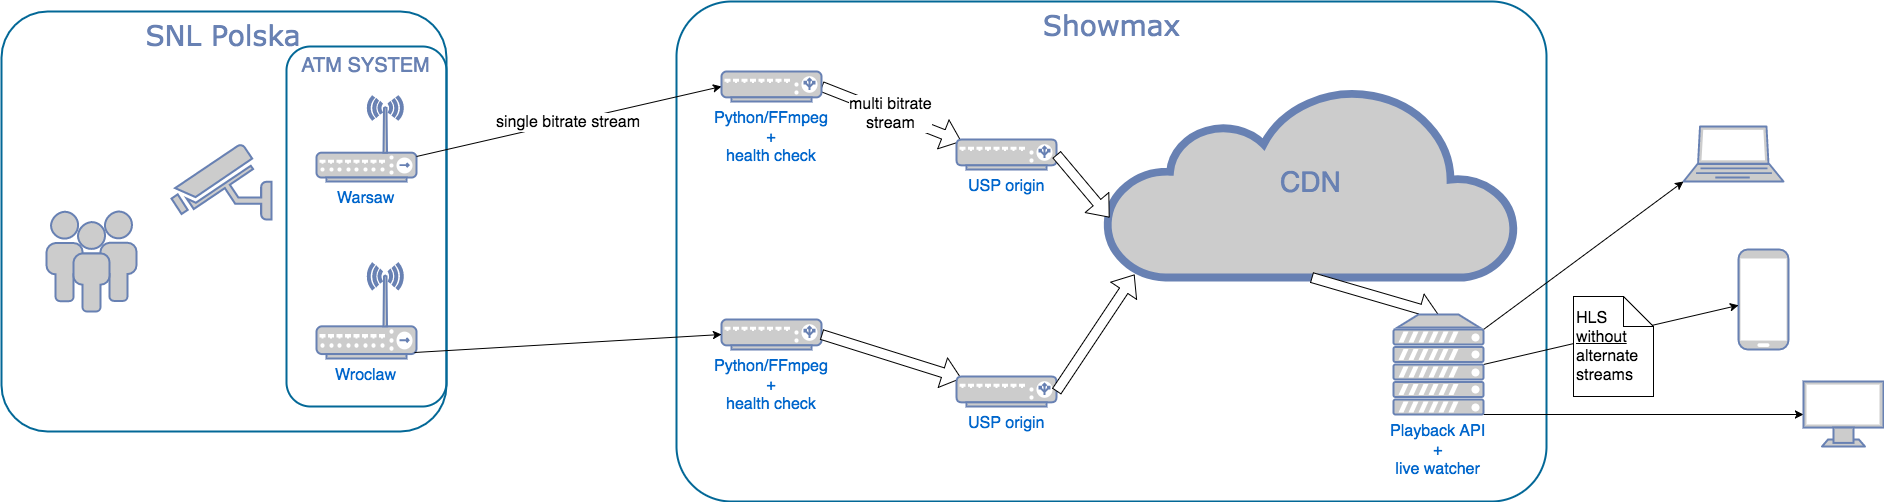 How Showmax got into live streaming | Part I - Adventures in